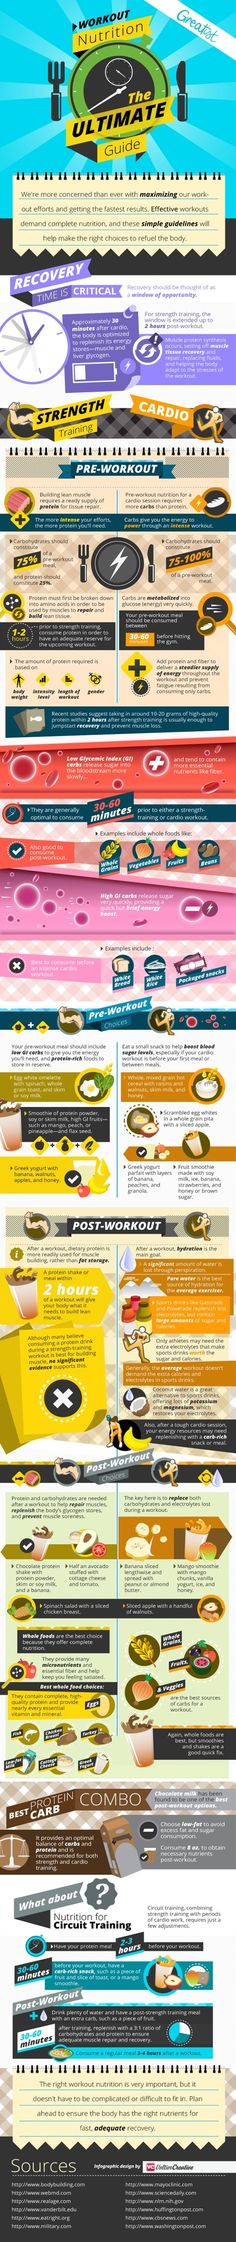 Nutrition Infographic!  Come to Body Morph Gym in Ferndale, MI for all of your fitness needs!  Call (248) 544-4646 TODAY to schedule an appointment or visit our website www.bodymorph.net for more information!